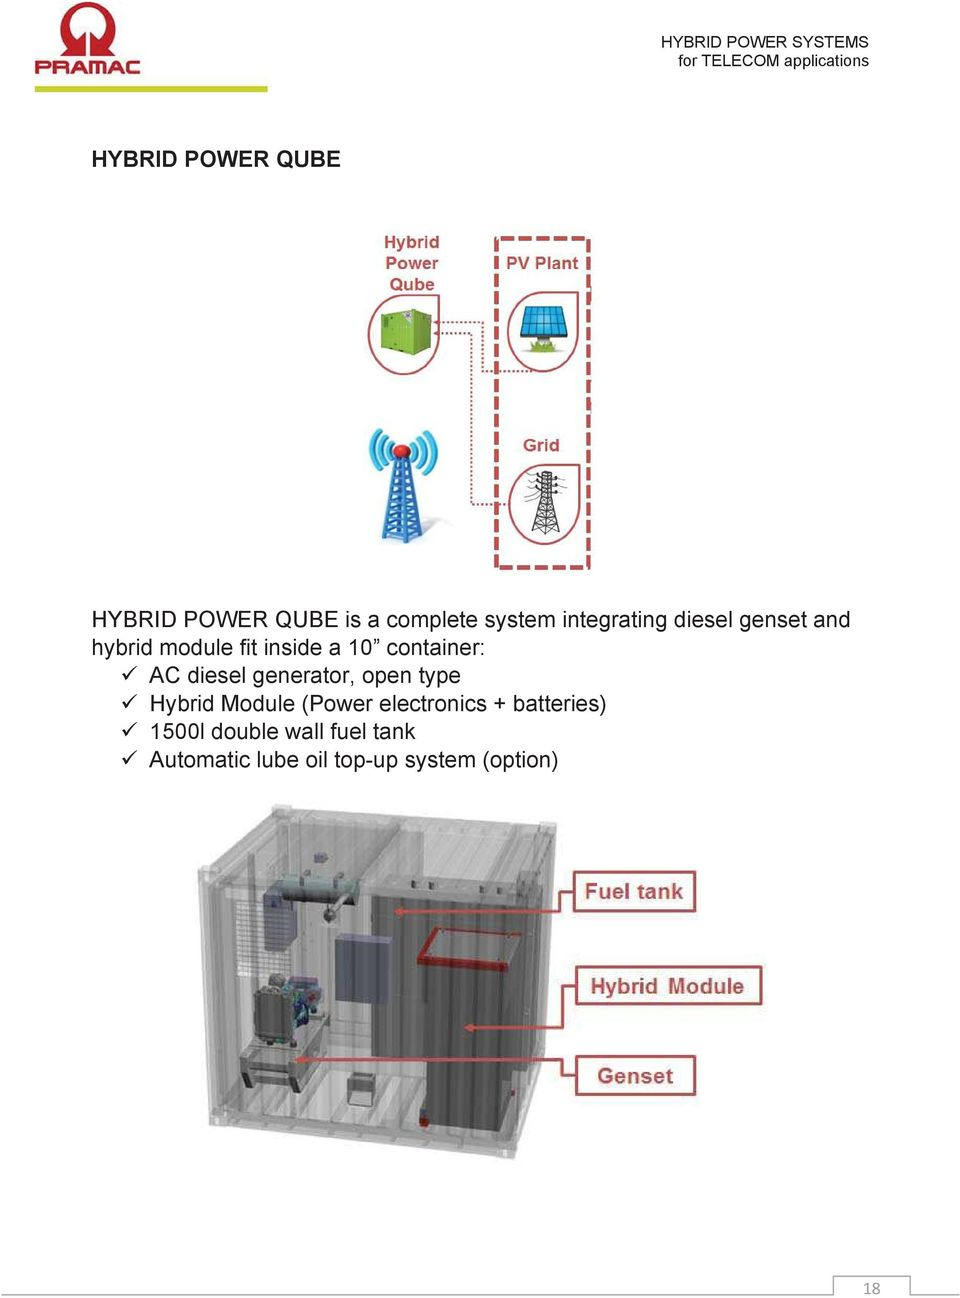 container: AC diesel generator, open type Hybrid Module (Power electronics